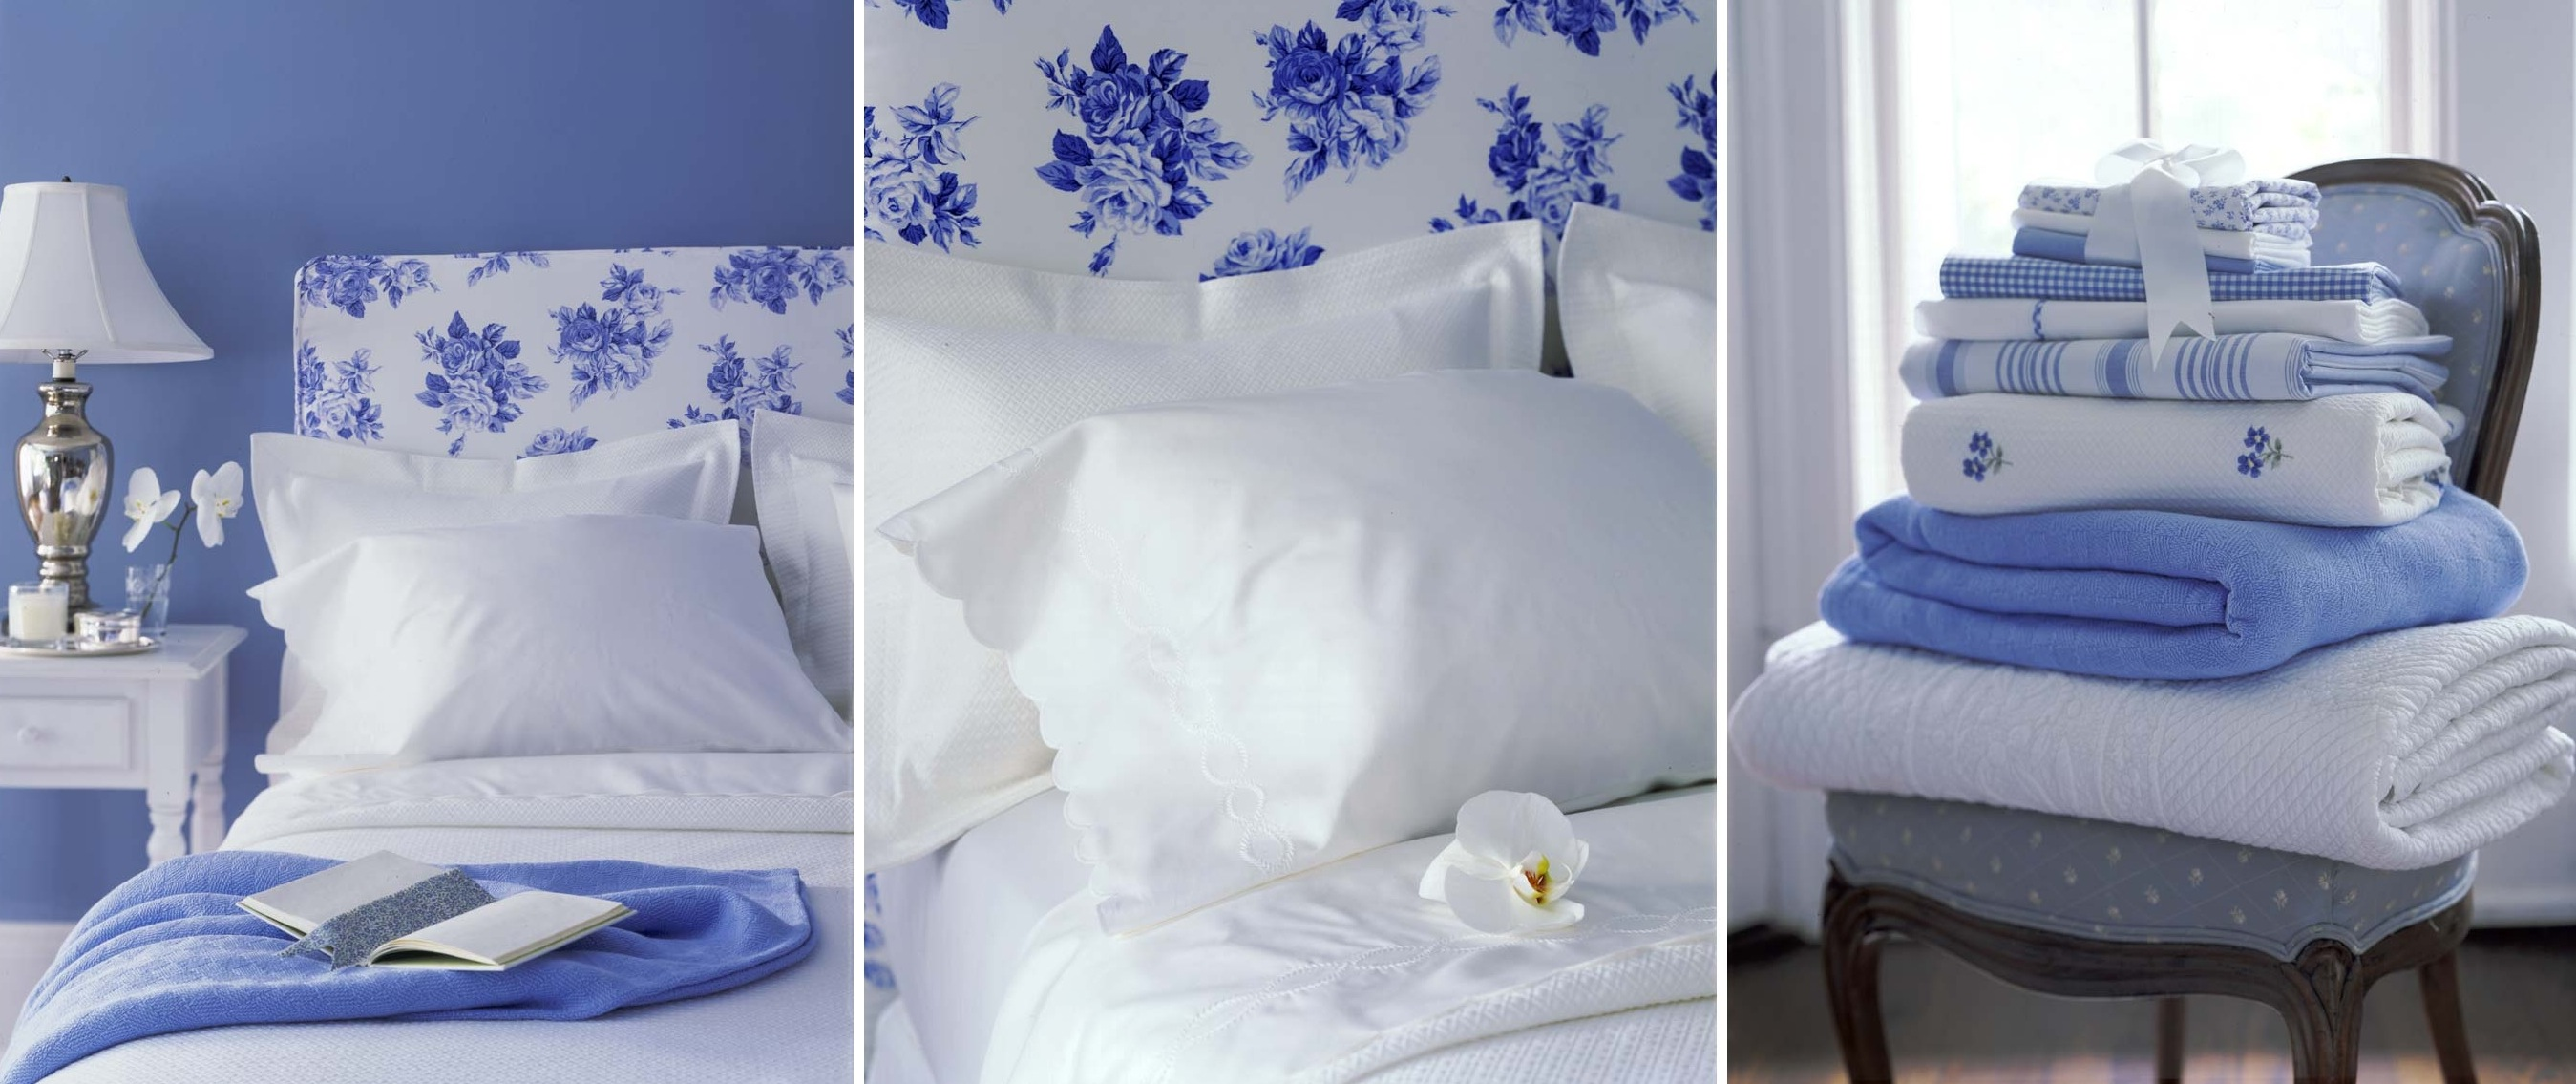 Blue and white bedding - By Anna Williams